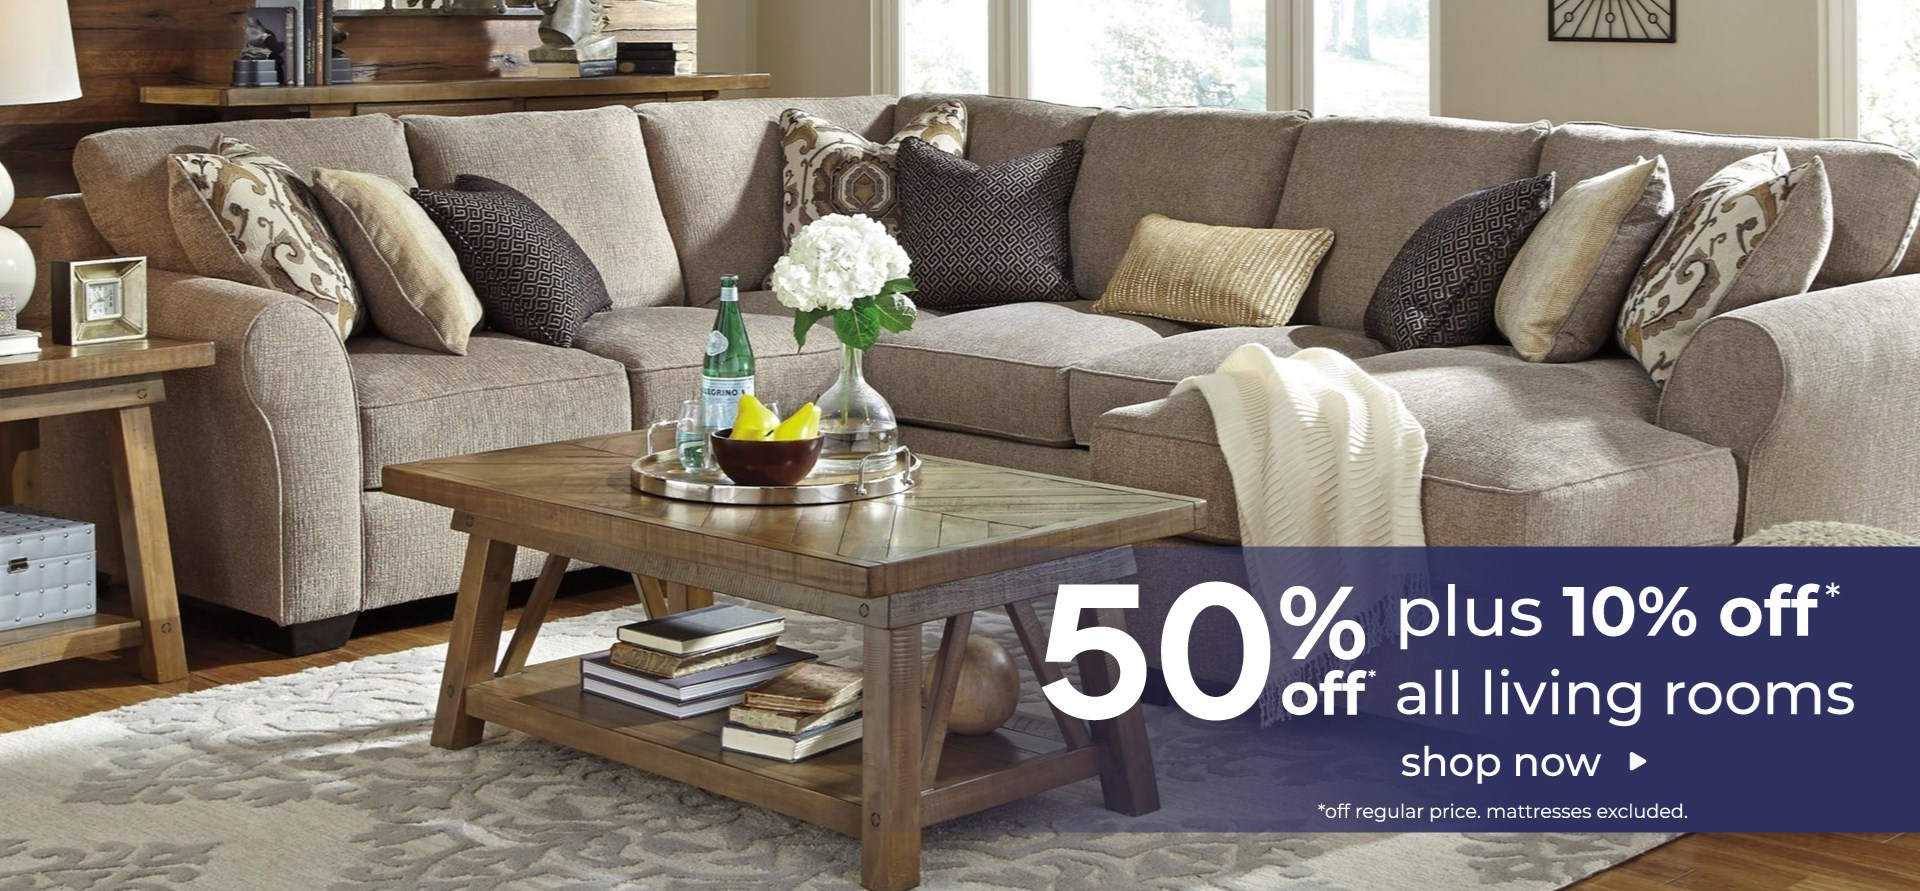 Living Rooms at VC Furniture